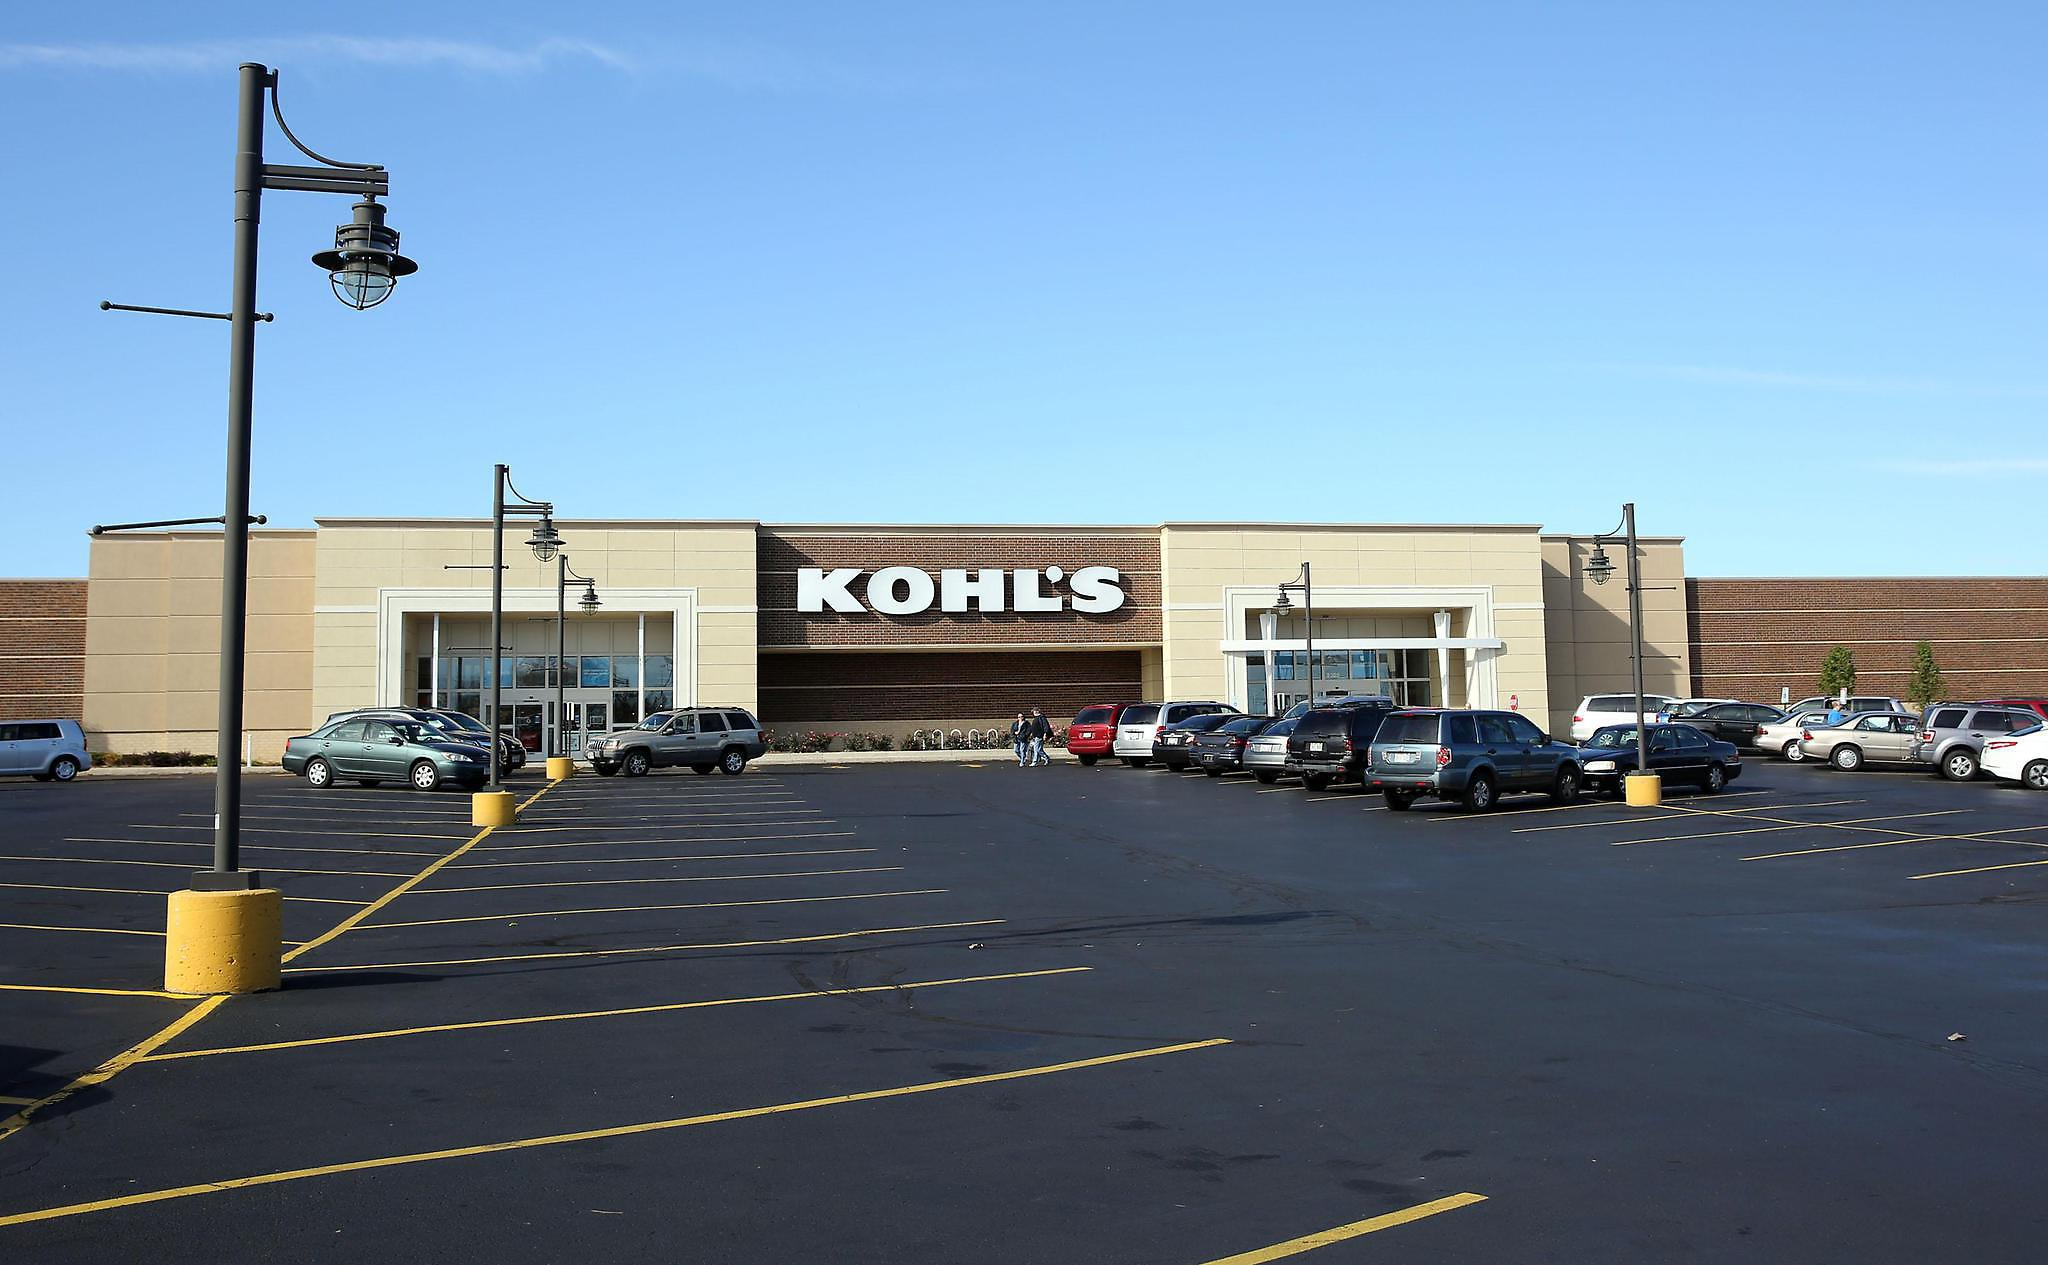 Kohl's department stores in Wisconsin are stocked with everything you need for yourself and your home - apparel, shoes & accessories for women, children and men, plus home products like small electrics, bedding, luggage and more.